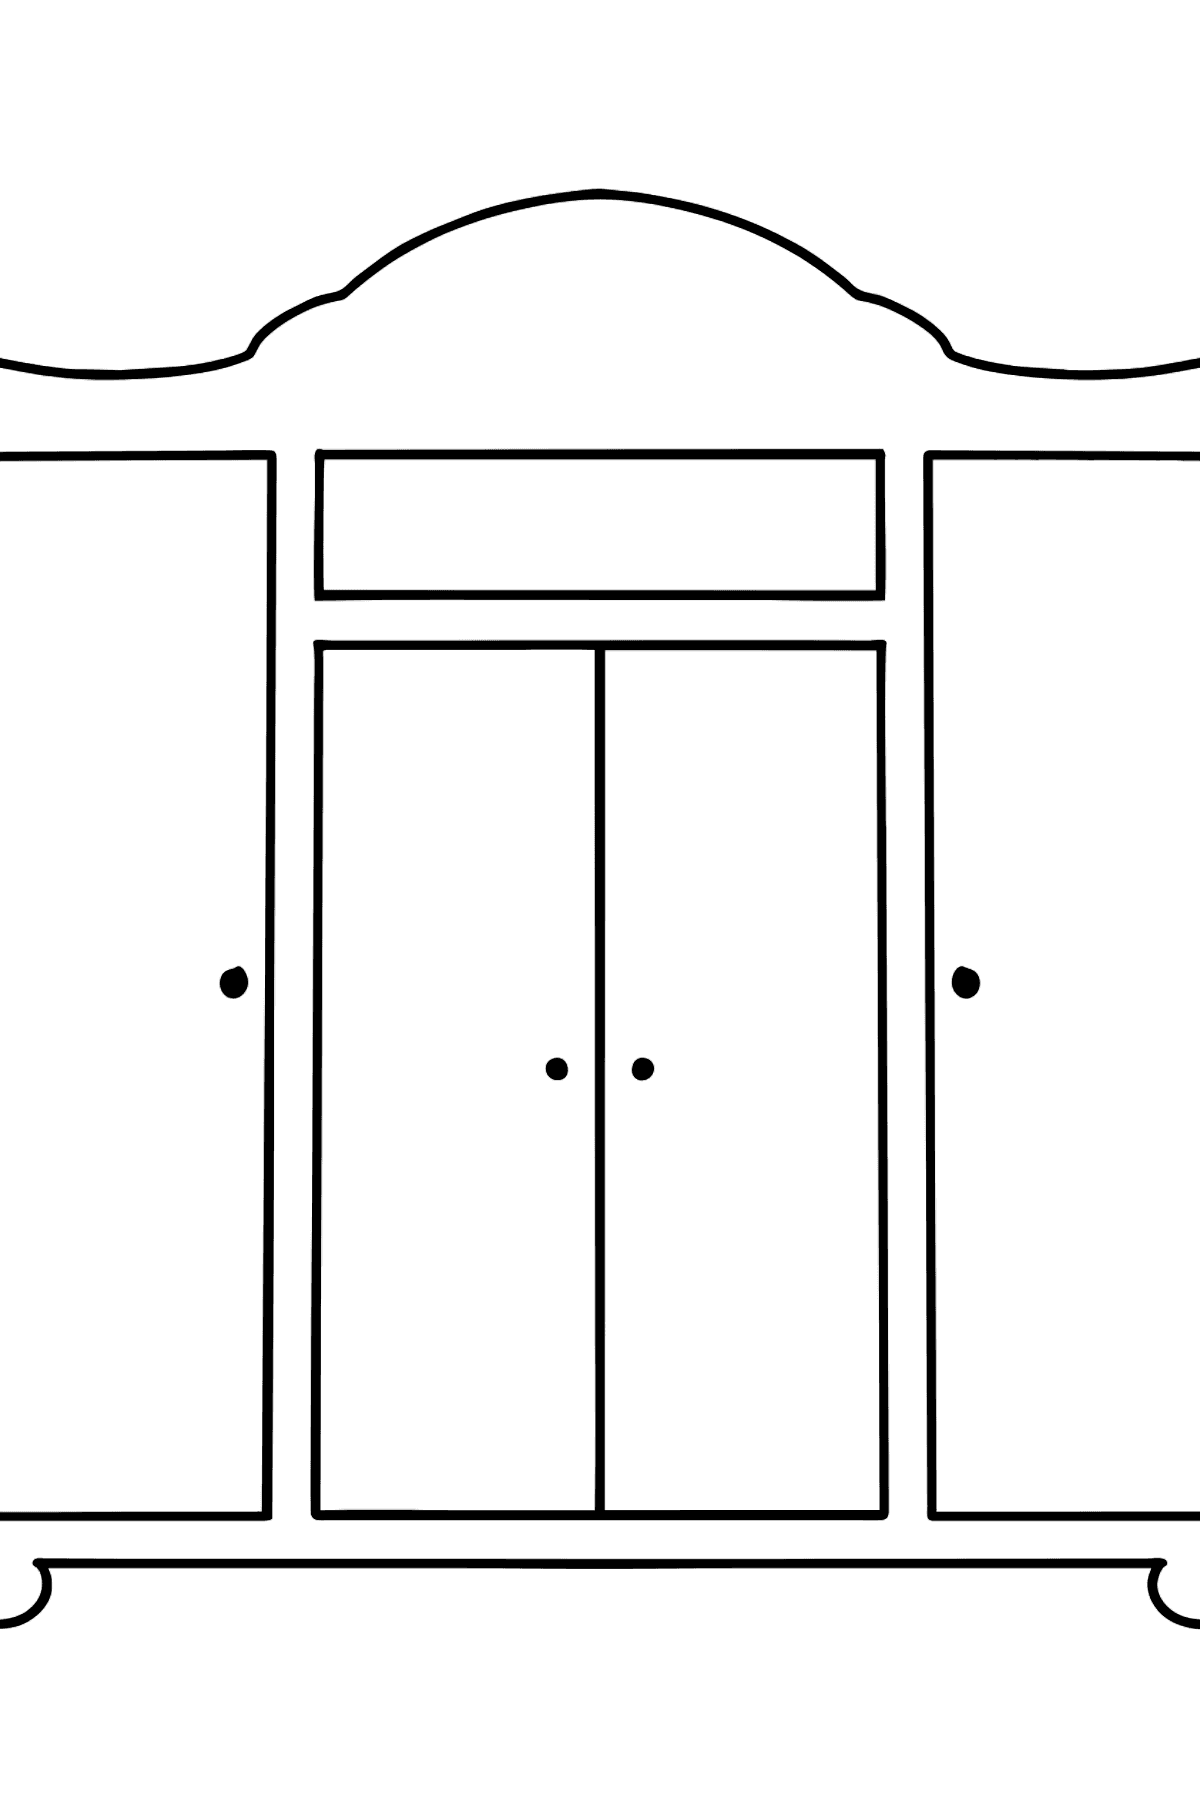 Wardrobe coloring page - Coloring Pages for Kids